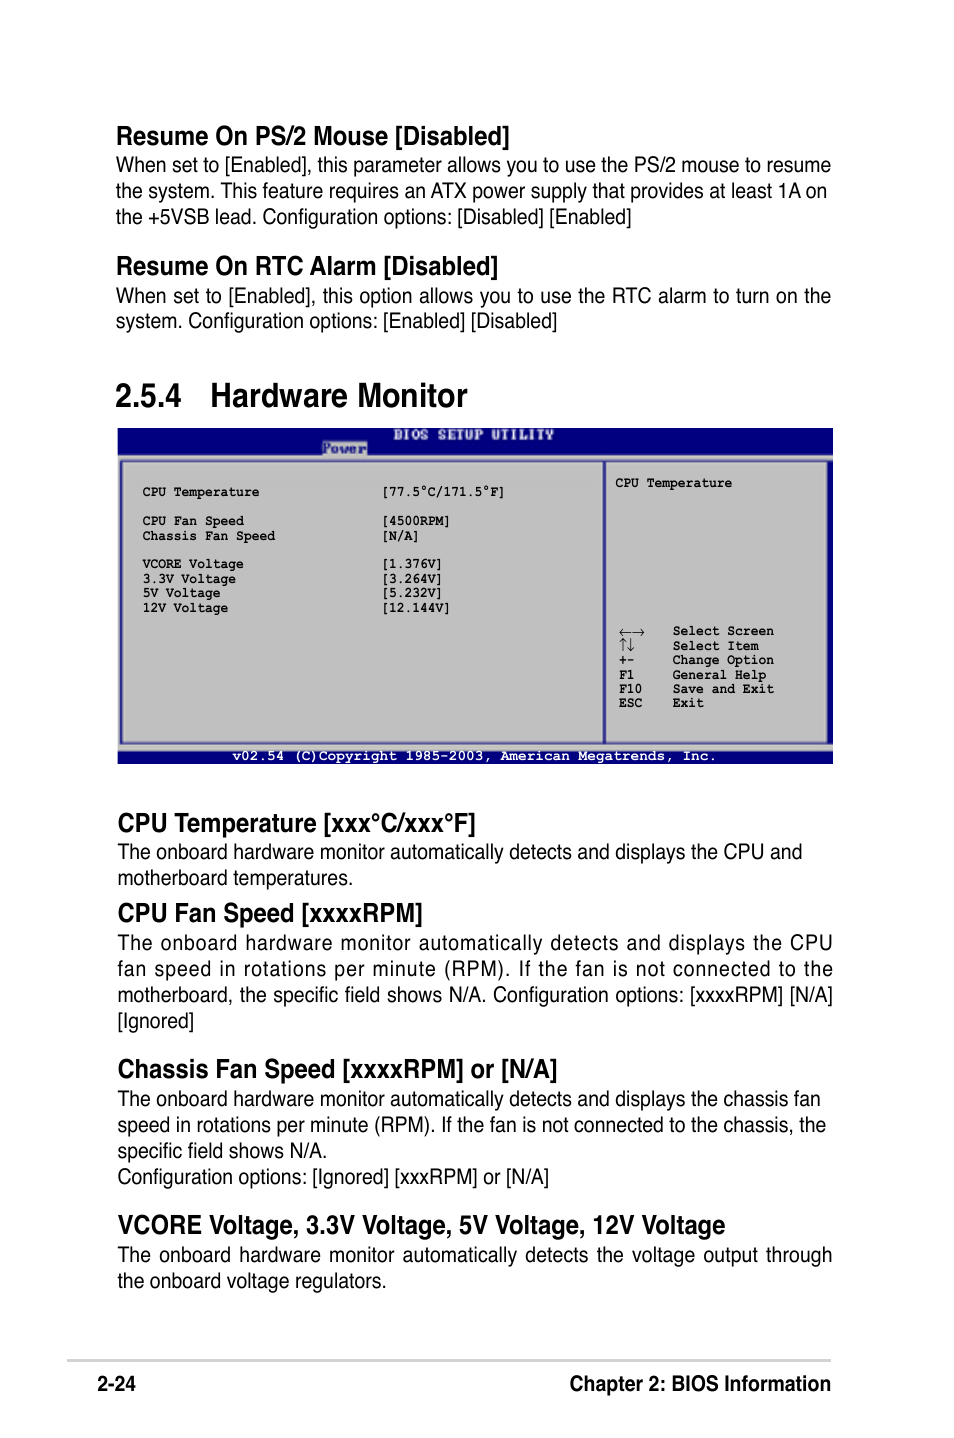 hardware monitor cpu temperature xxx c xxx f resume on ps 2 mouse